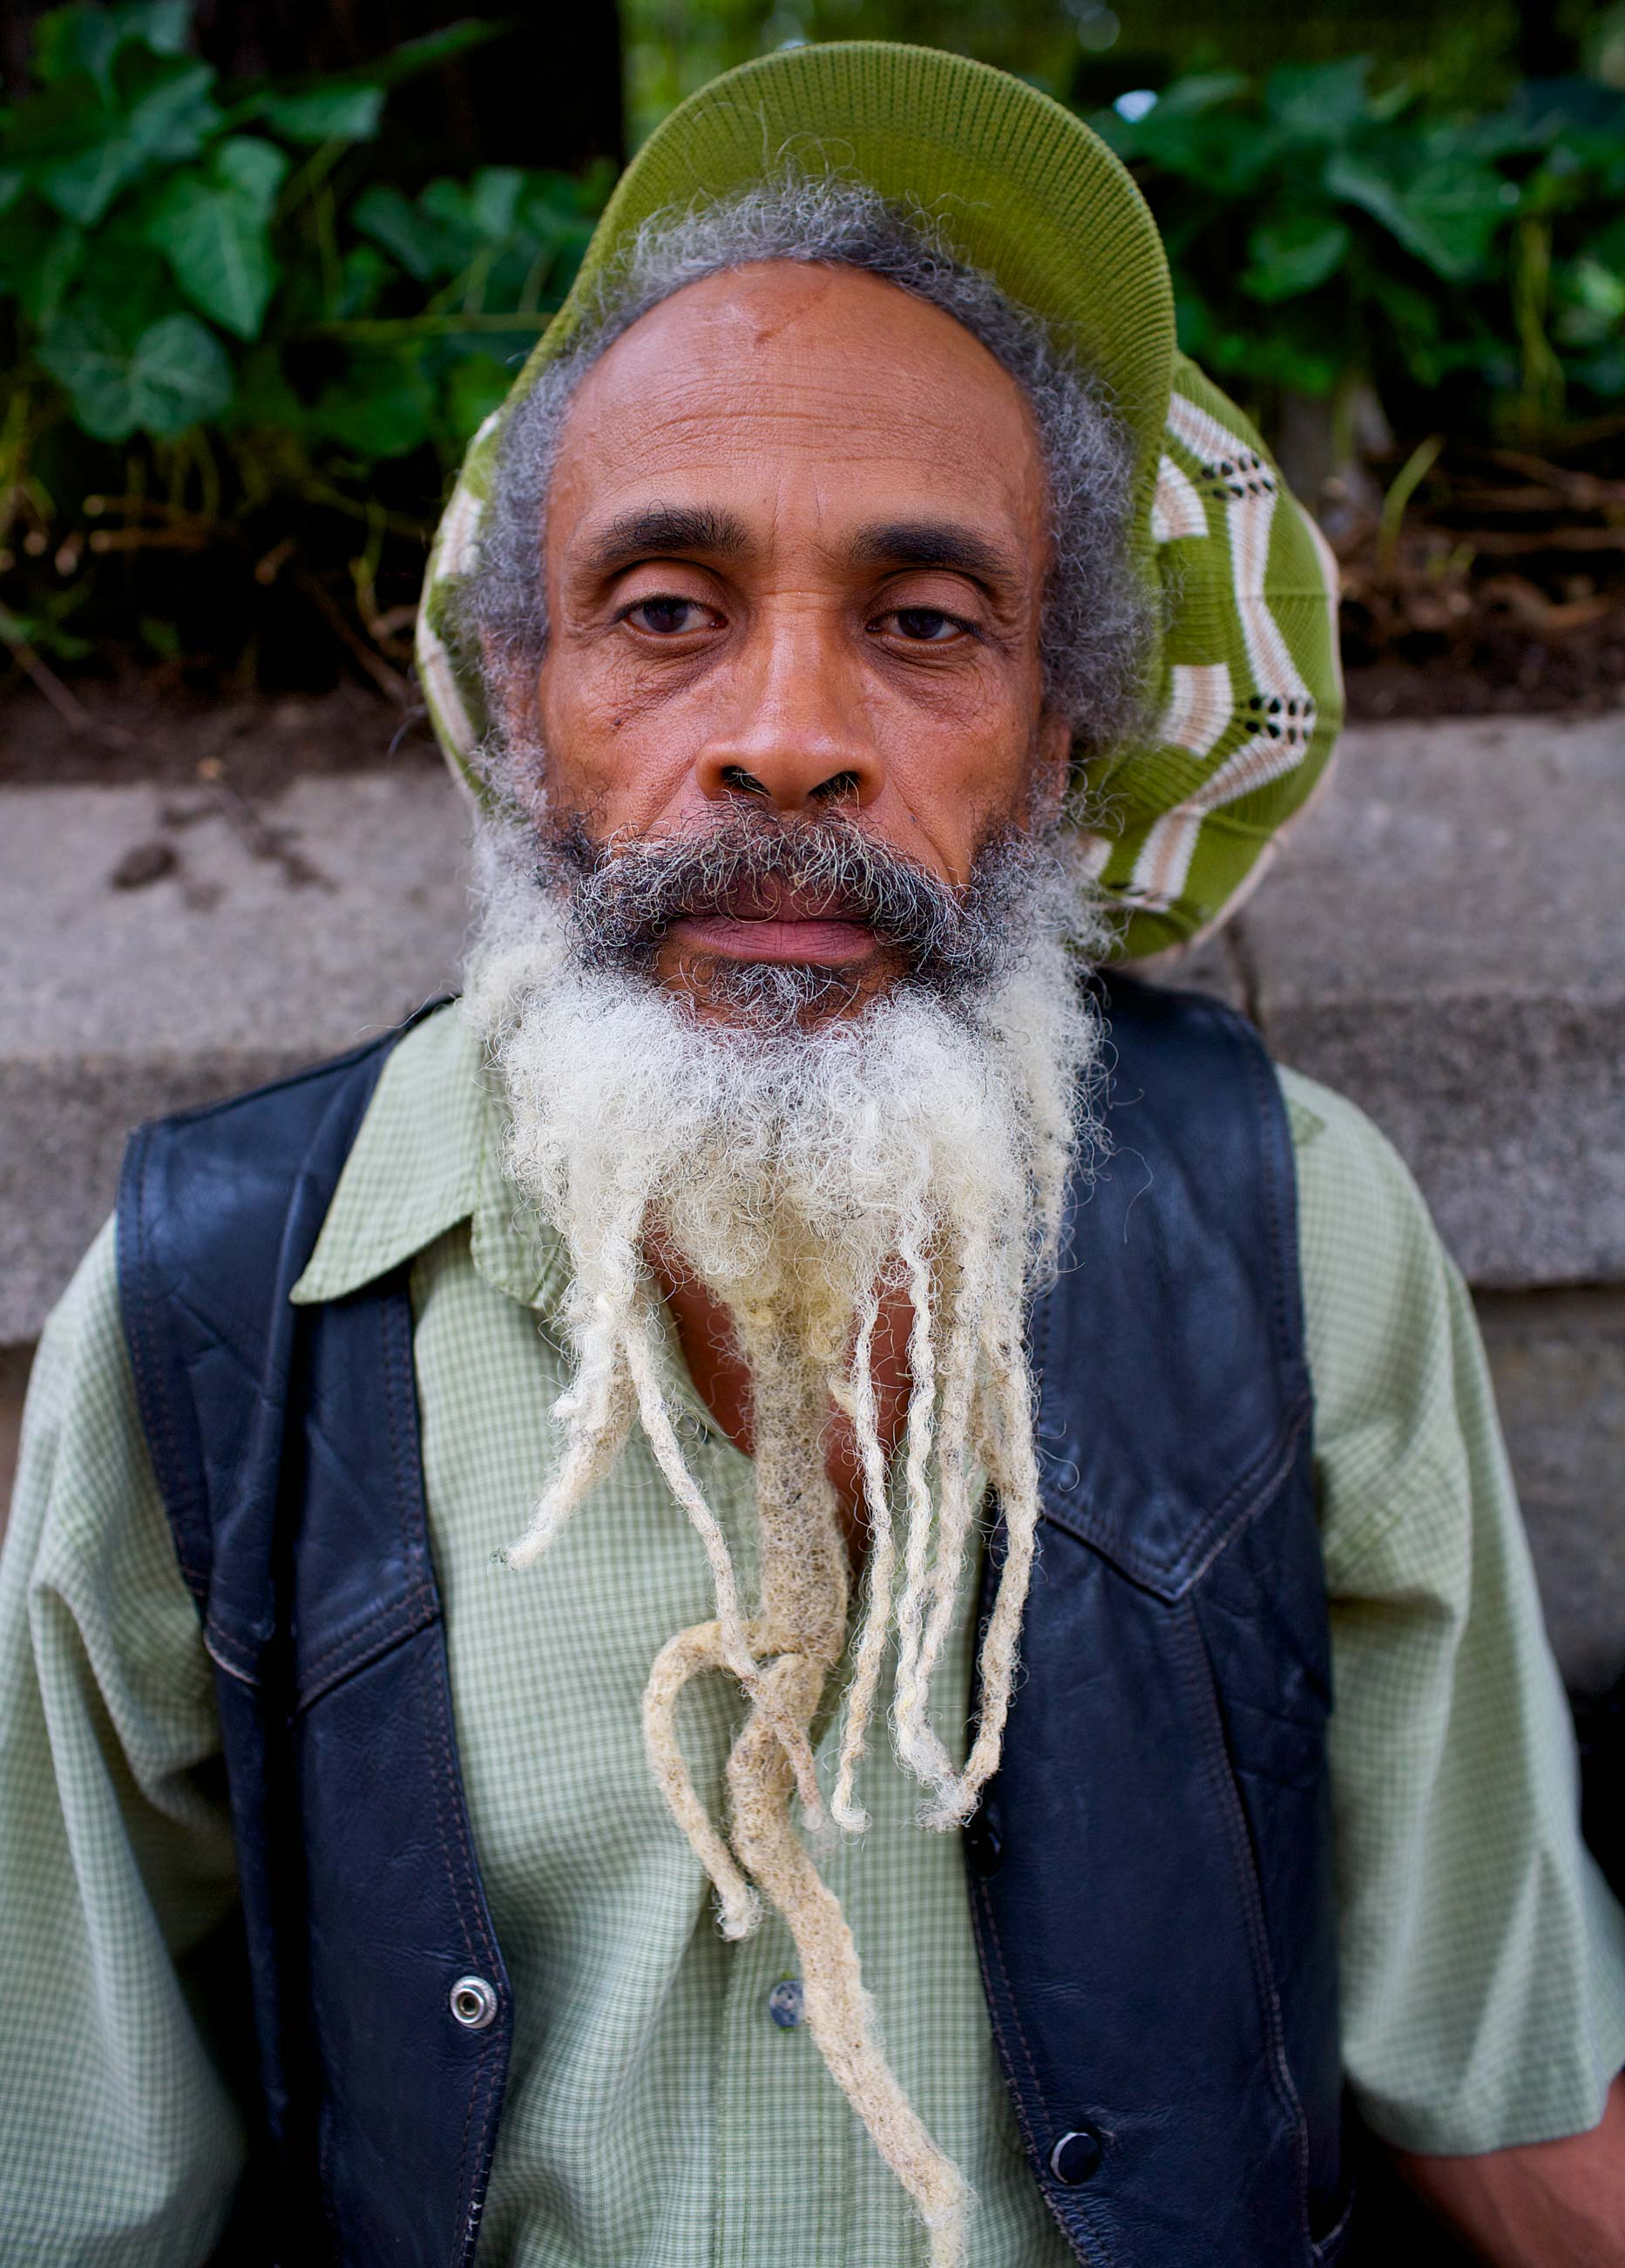 Bearded_Rastafarian_In_Union_SQ_NYC.jpg